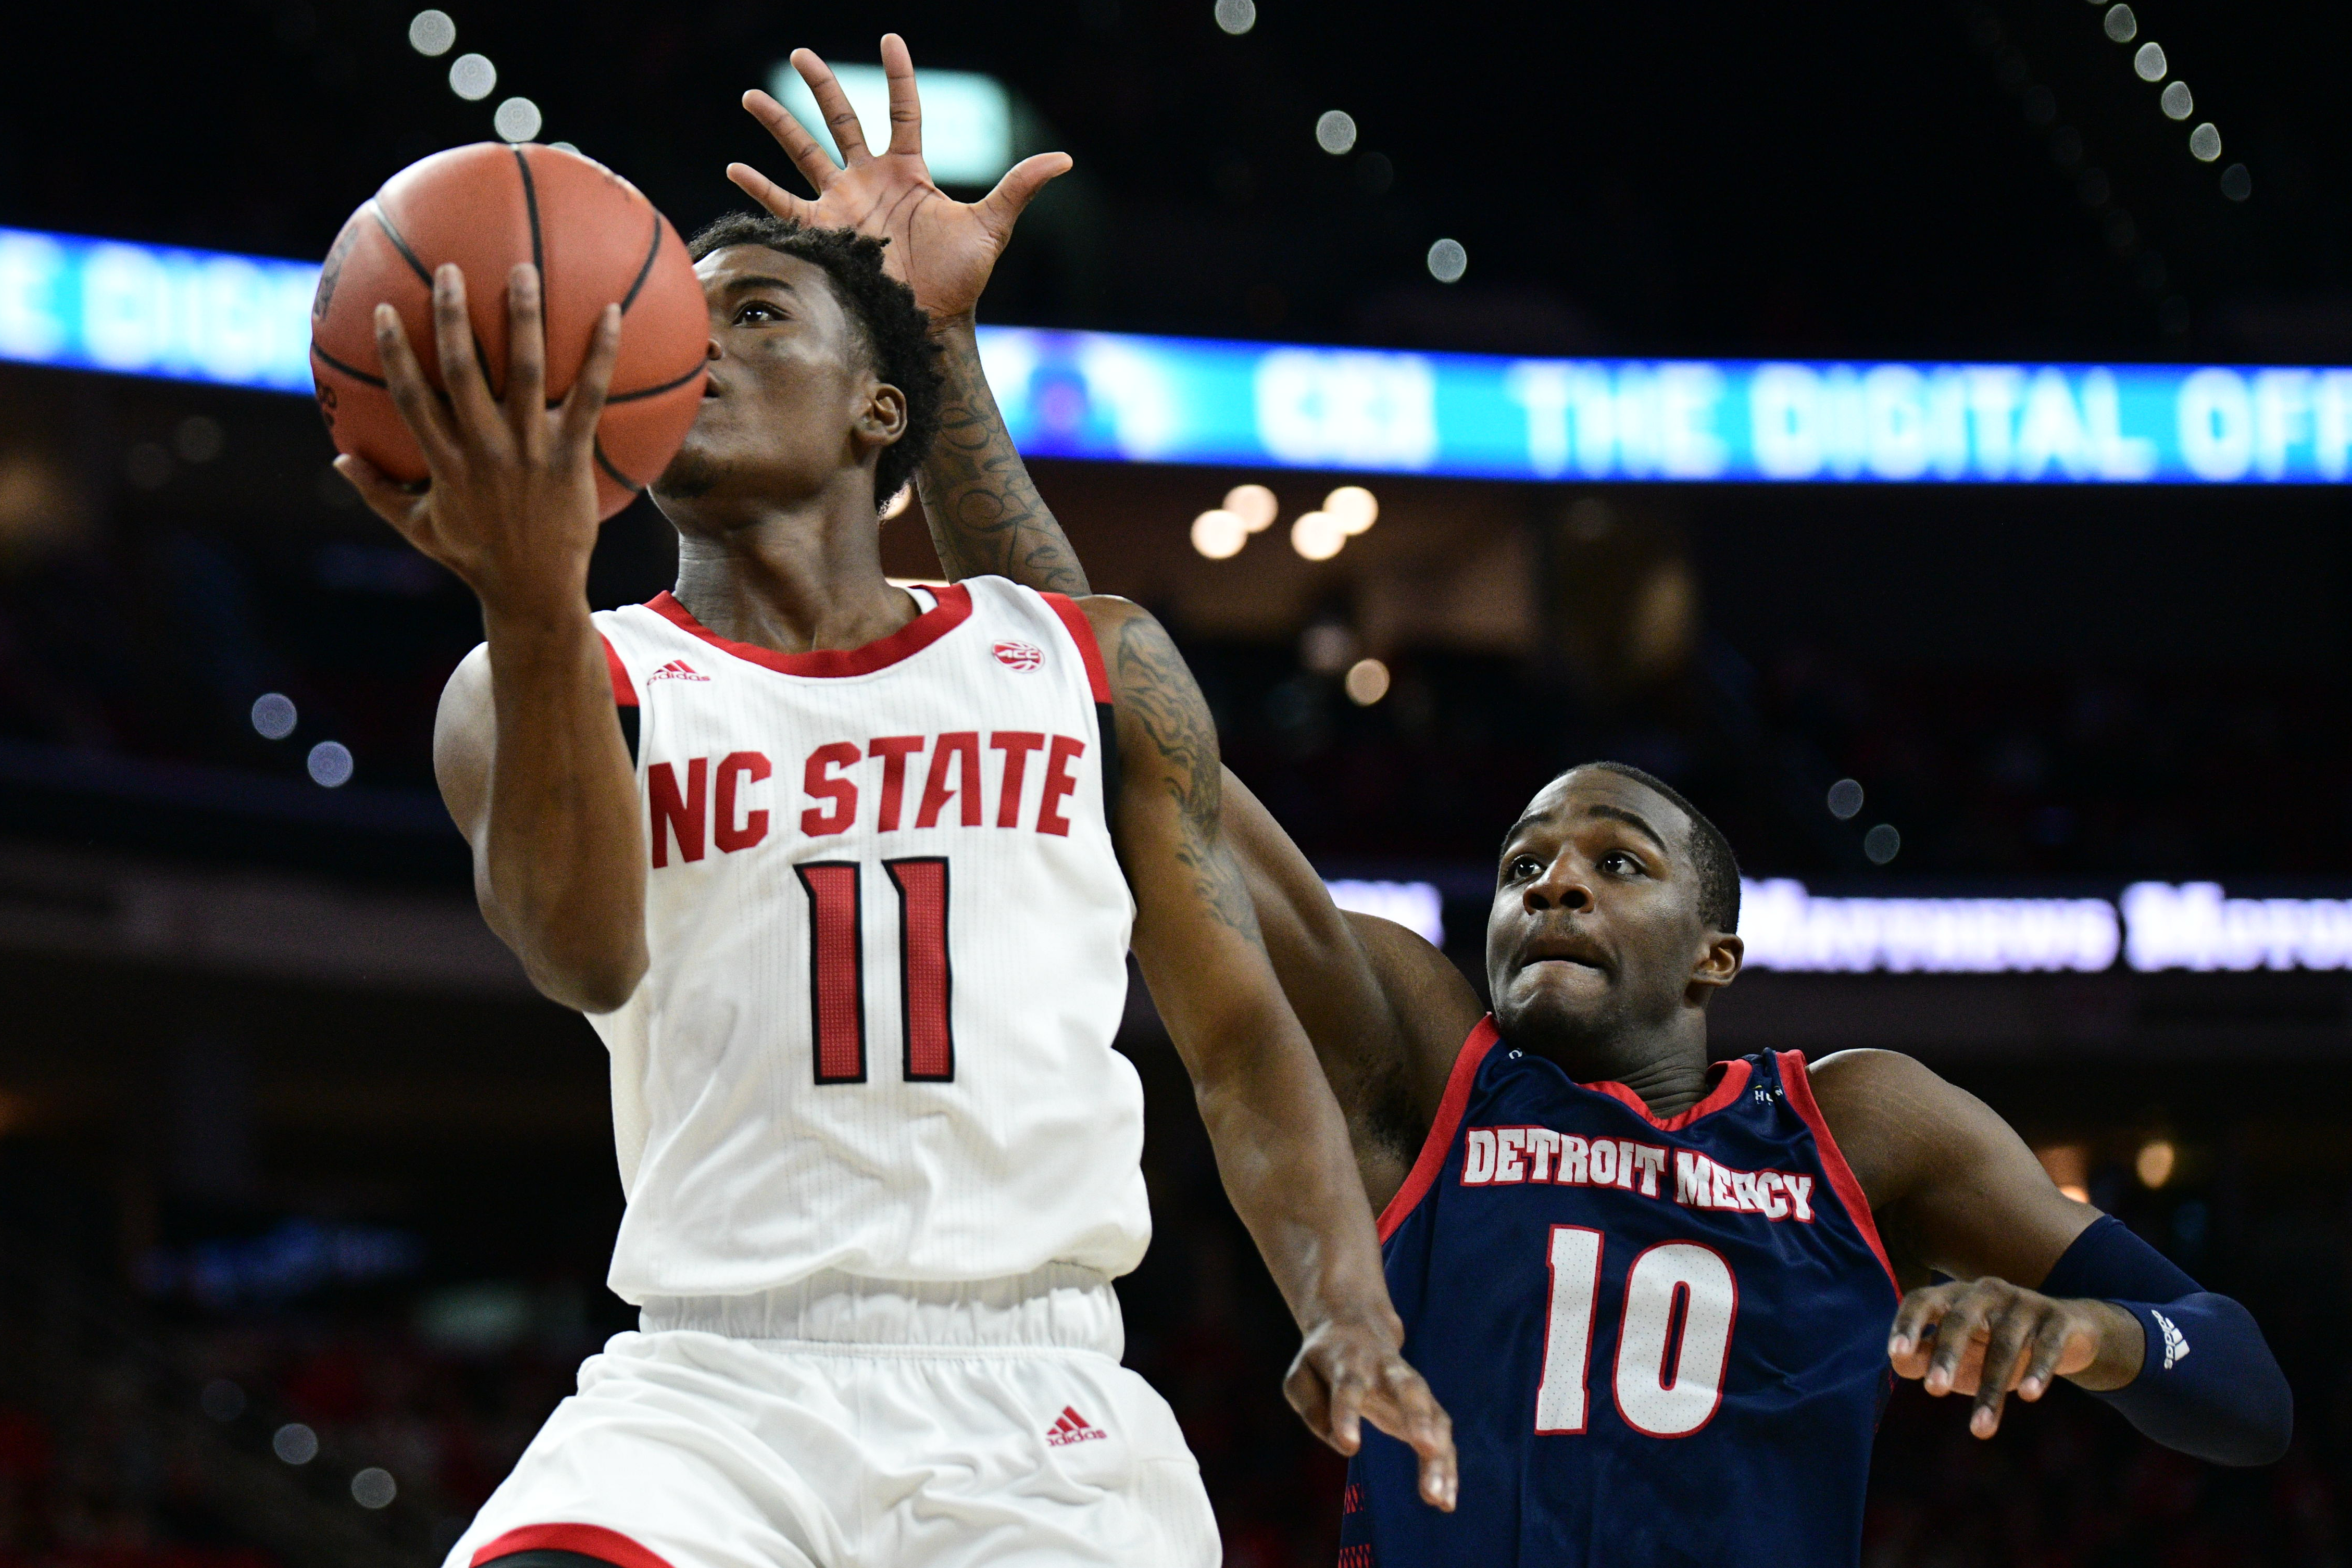 COLLEGE BASKETBALL: NOV 10 Detroit at NC State